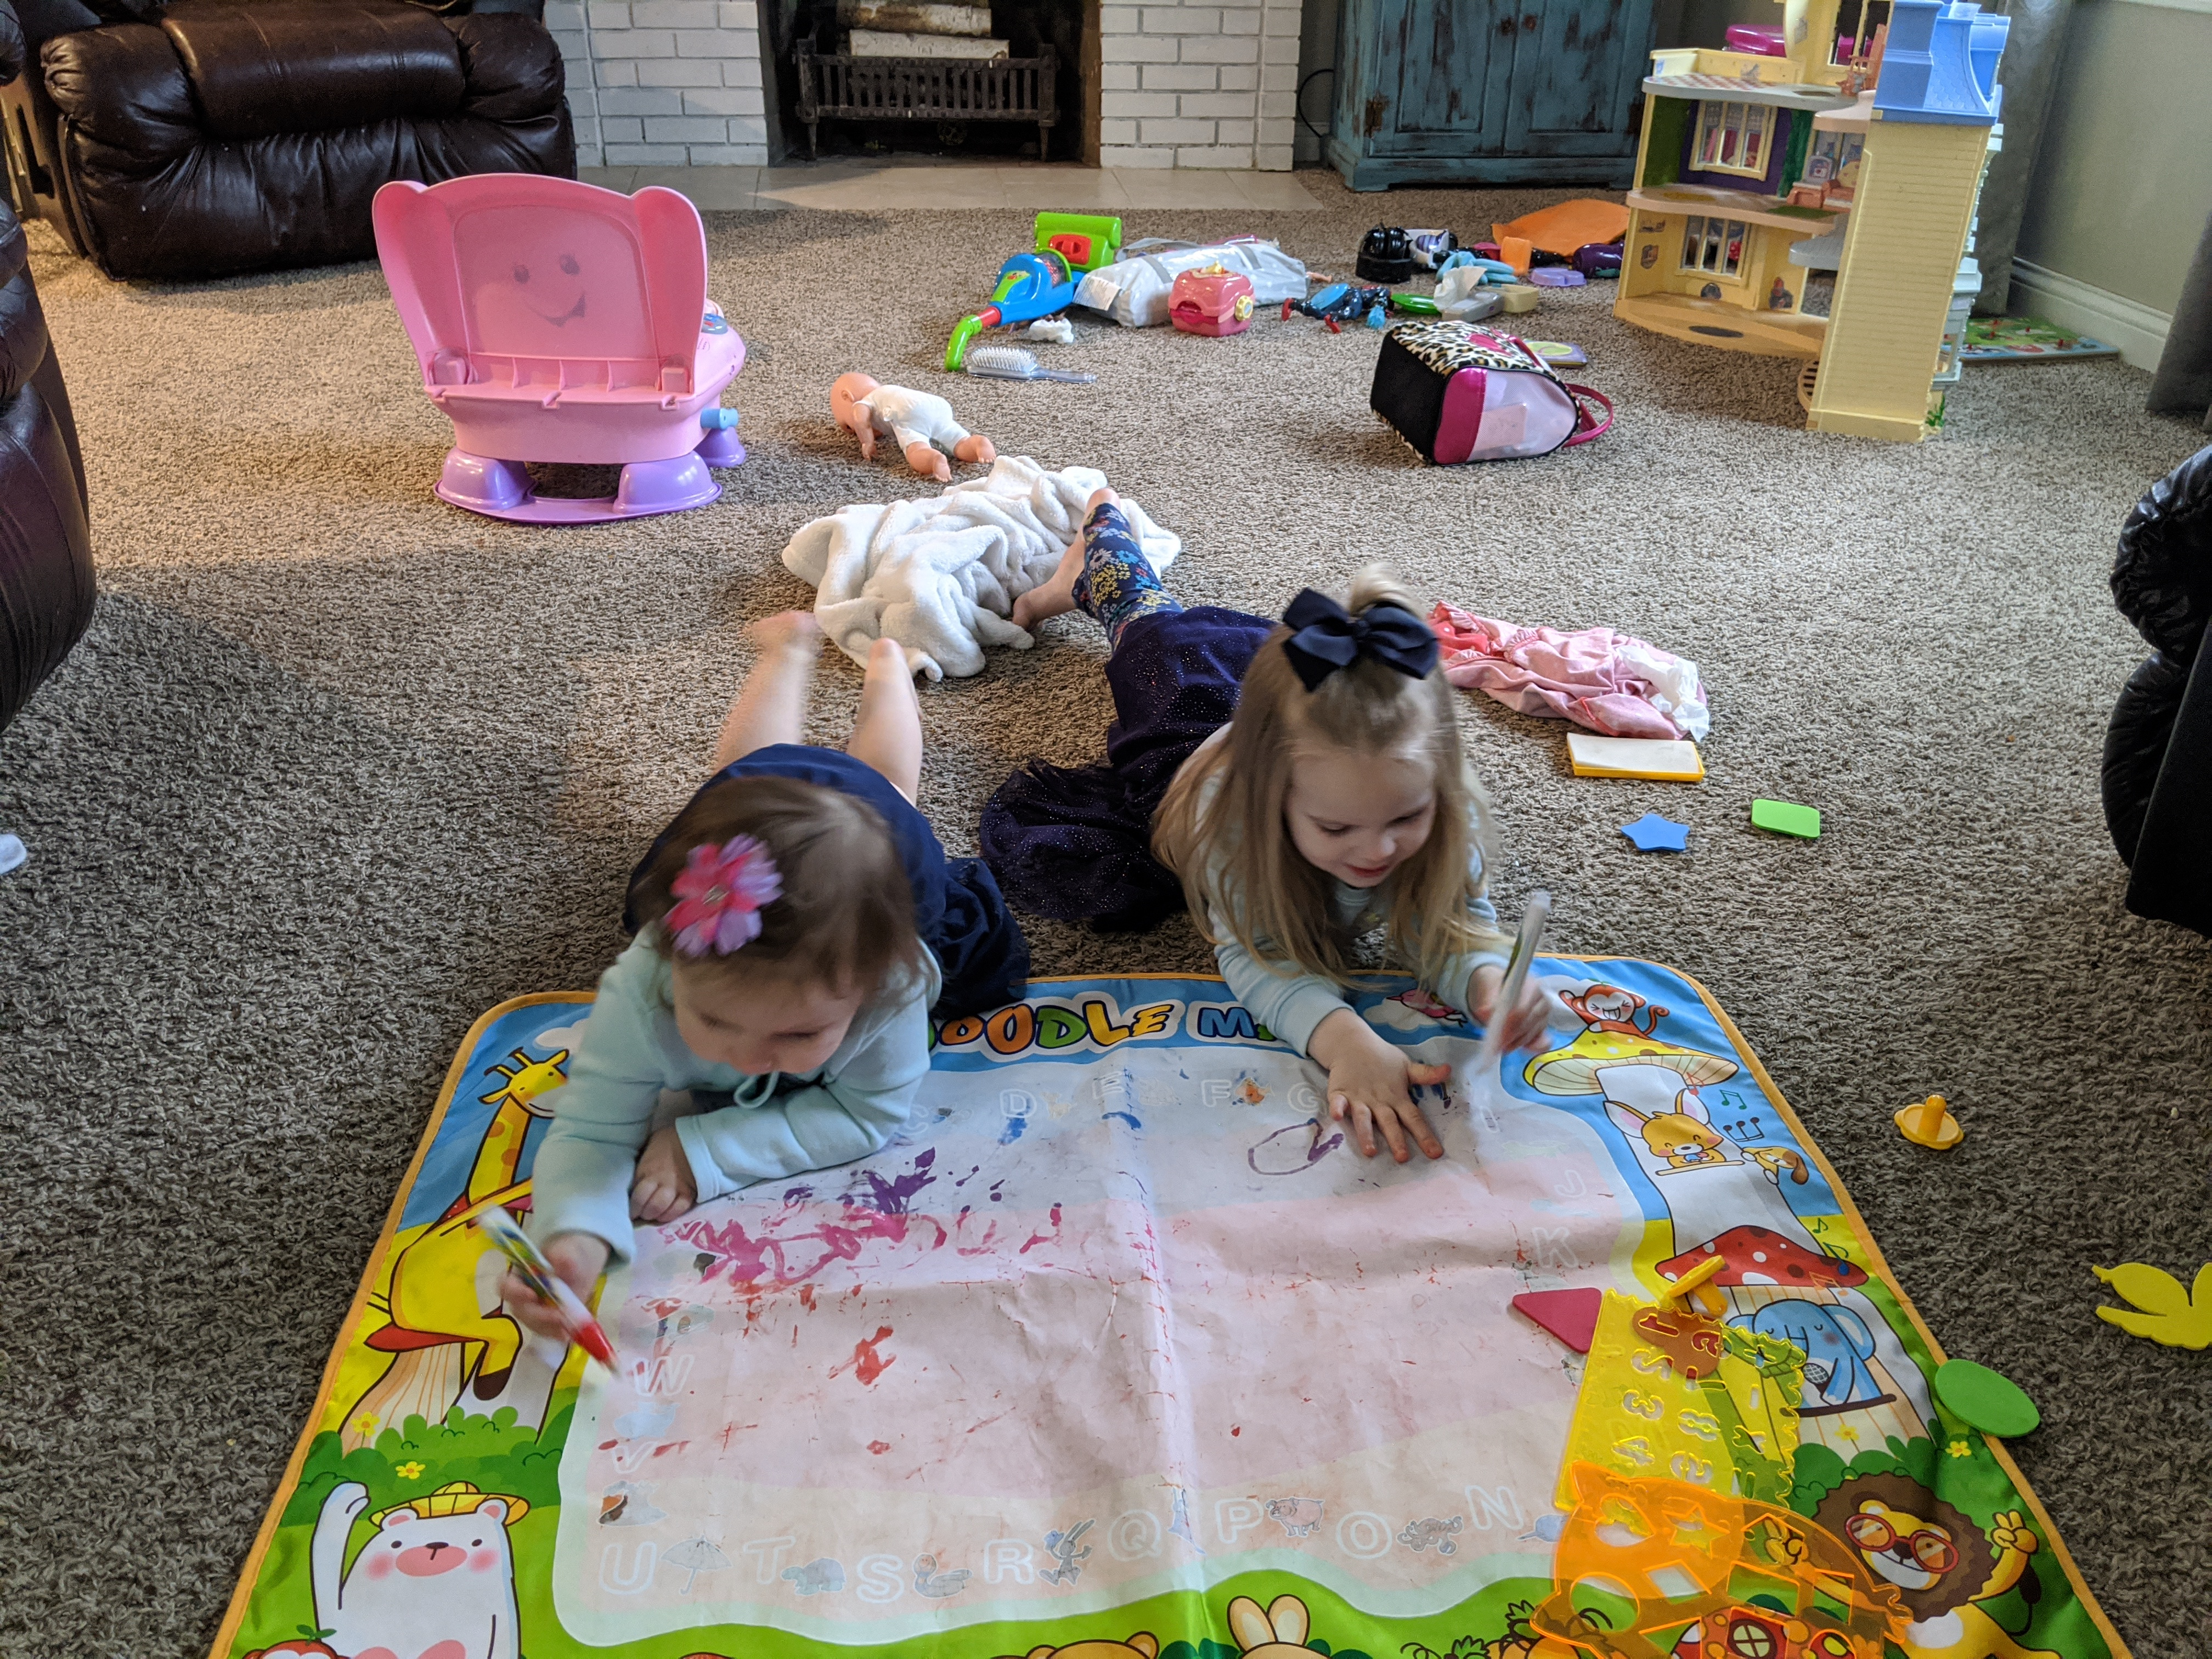 Two young girls lying on the floor with toys scattered, color photo